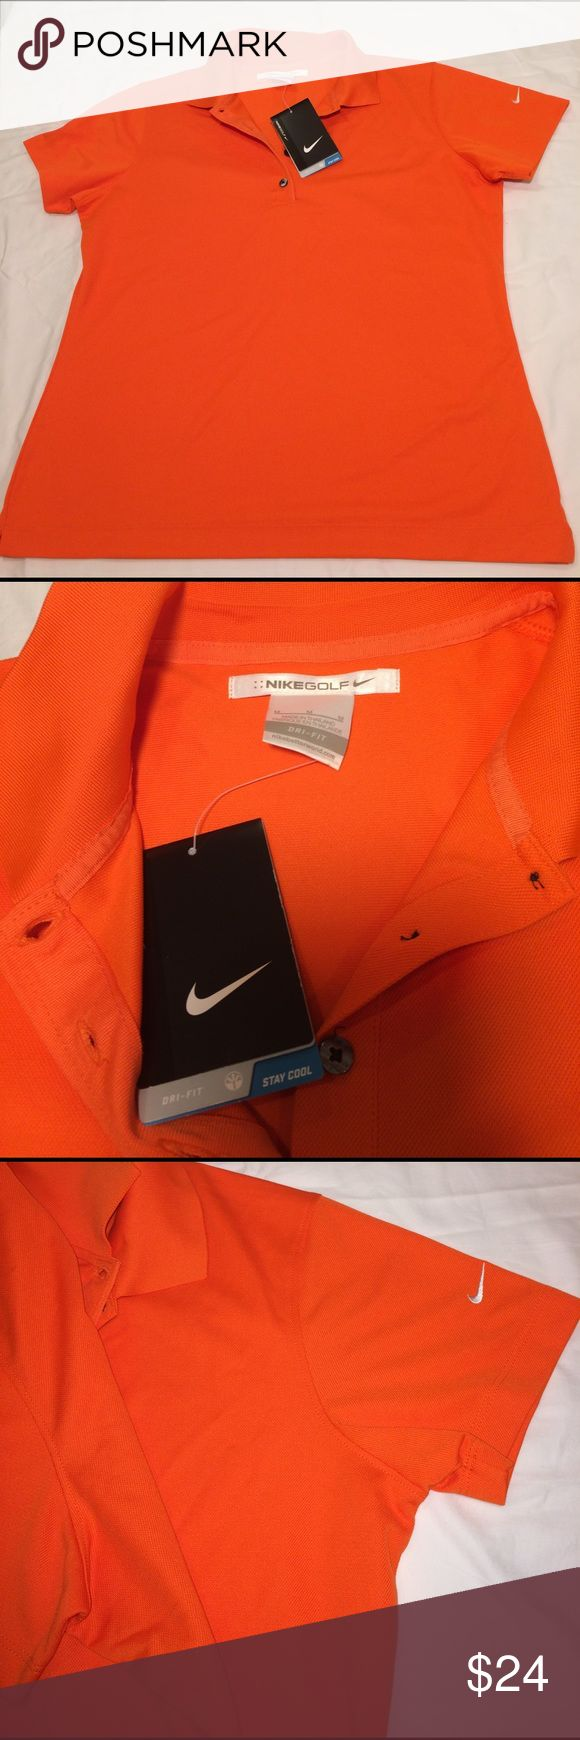 Nike Dri fit Nikegolf polo shirt stay cool NWT Brand new Nikegolf short sleeved polo shirt in a stunning orange color. 4 button closure and collar. No stains, no holes Brand new never worn Nike Tops Tees - Short Sleeve